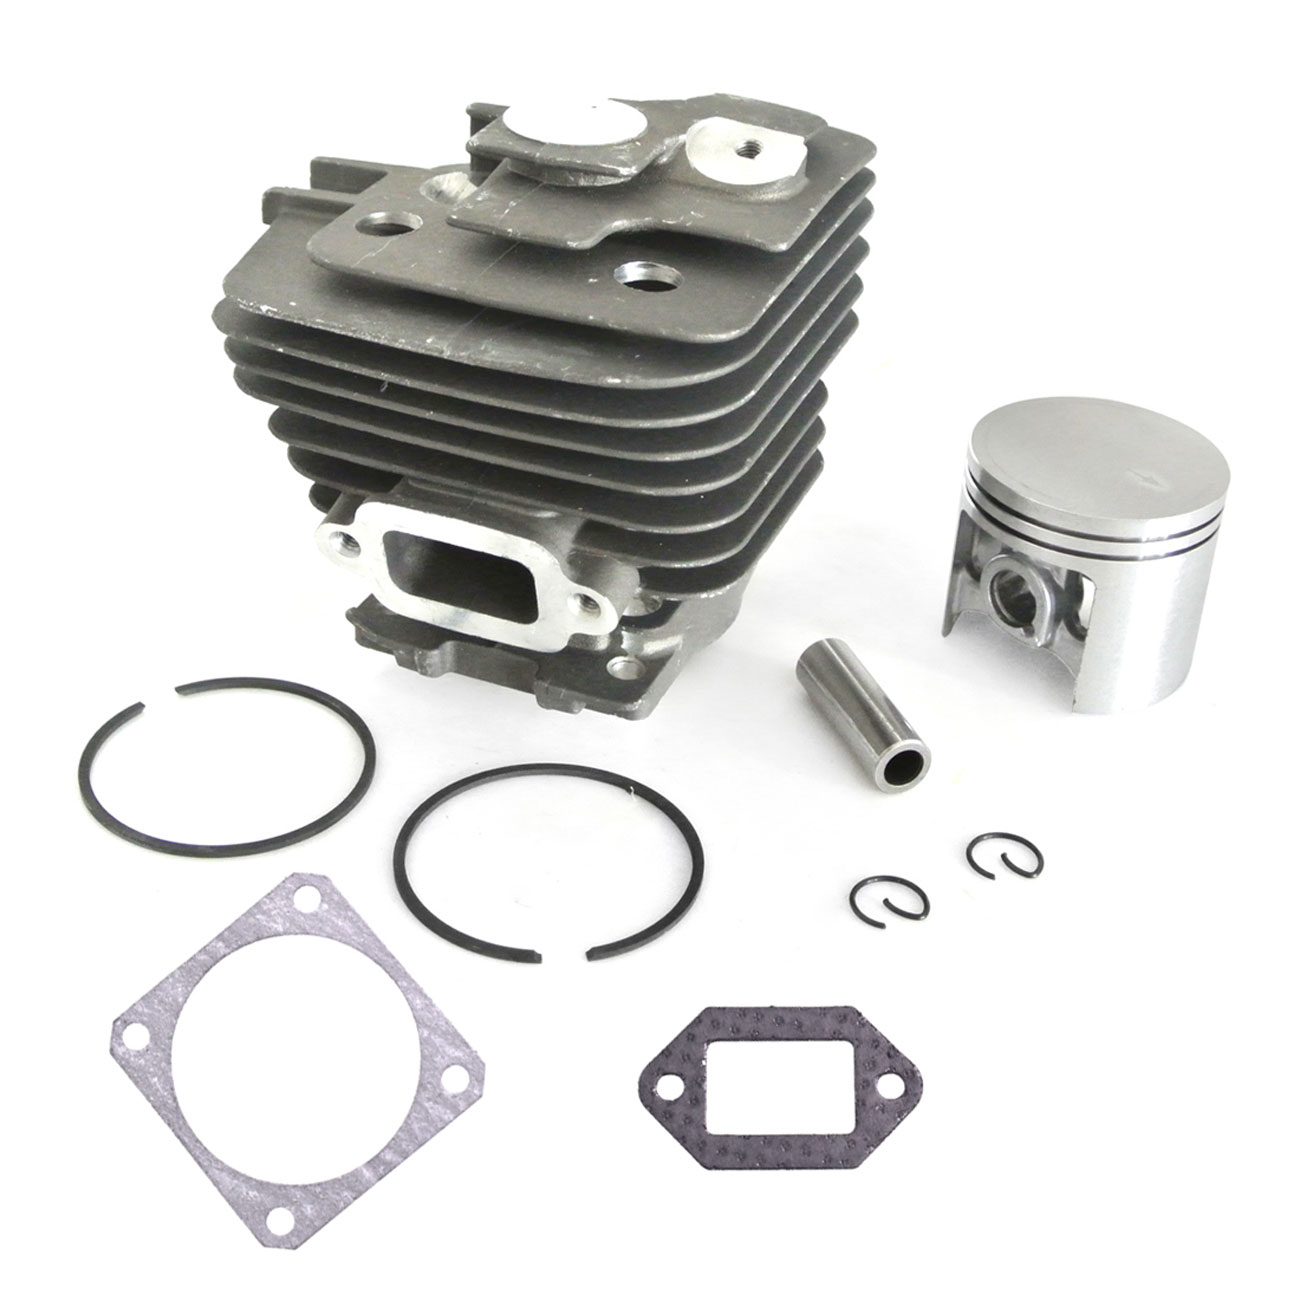 New Cylinder 47mm Piston Ring Motor Kit For STIHL MS361 MS341 Chainsaws 47mm cylinder piston kit for stihl ms310 ms 310 rep 1127 020 1218